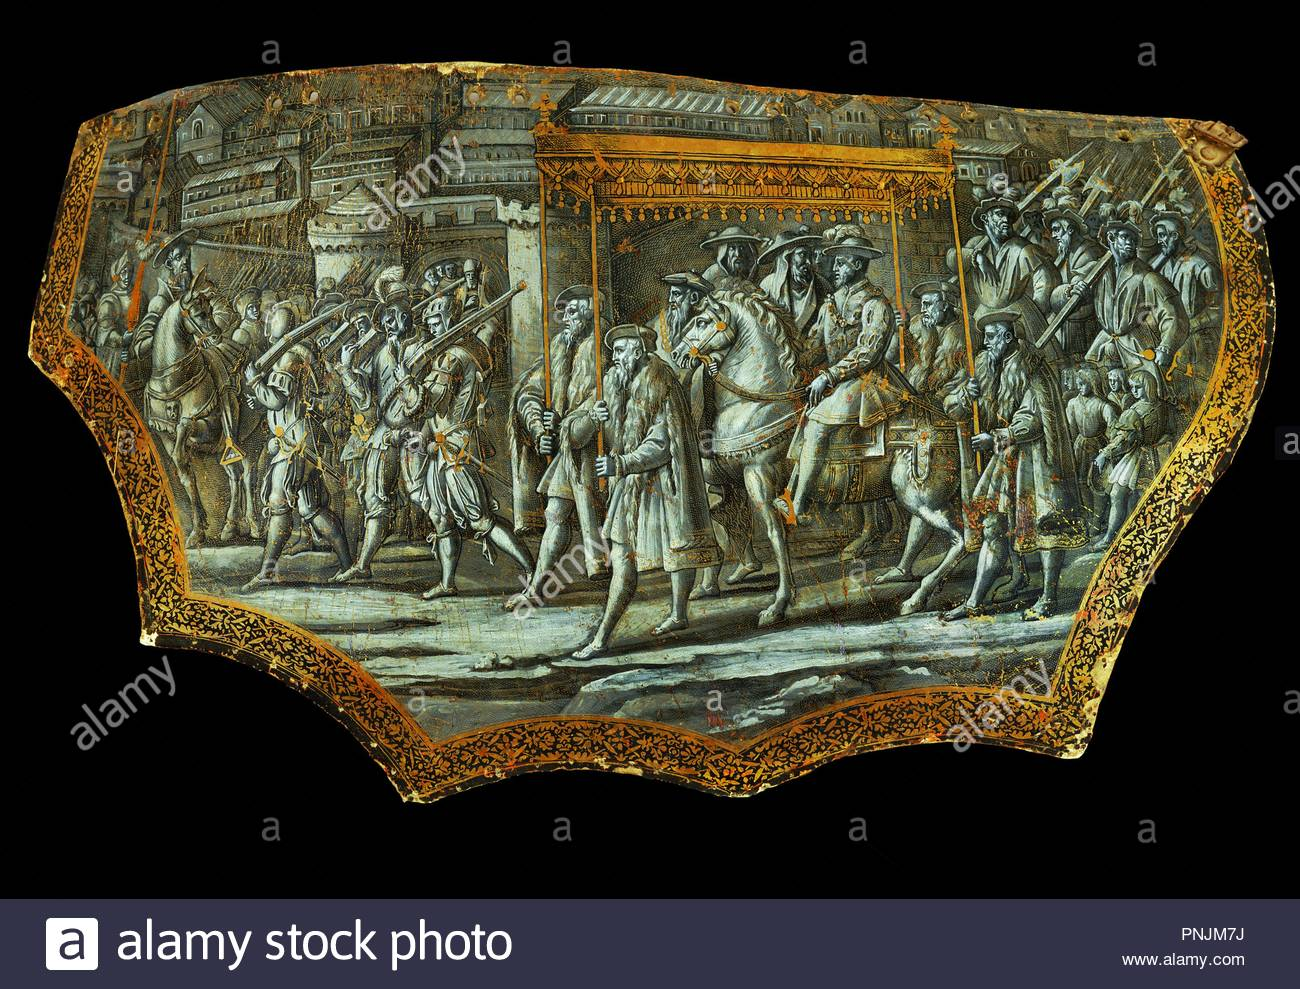 Parade shield after Giovanni Stradanus: Entry of Cosimo I. de Medici, Grandduke of Tuscany, into Rome 1569. Canvas on wood, grisaille, hightened with gold. Author: Stradanus. Location: Louvre, Dpt. des Objets d'Art, Paris, France. - Stock Image